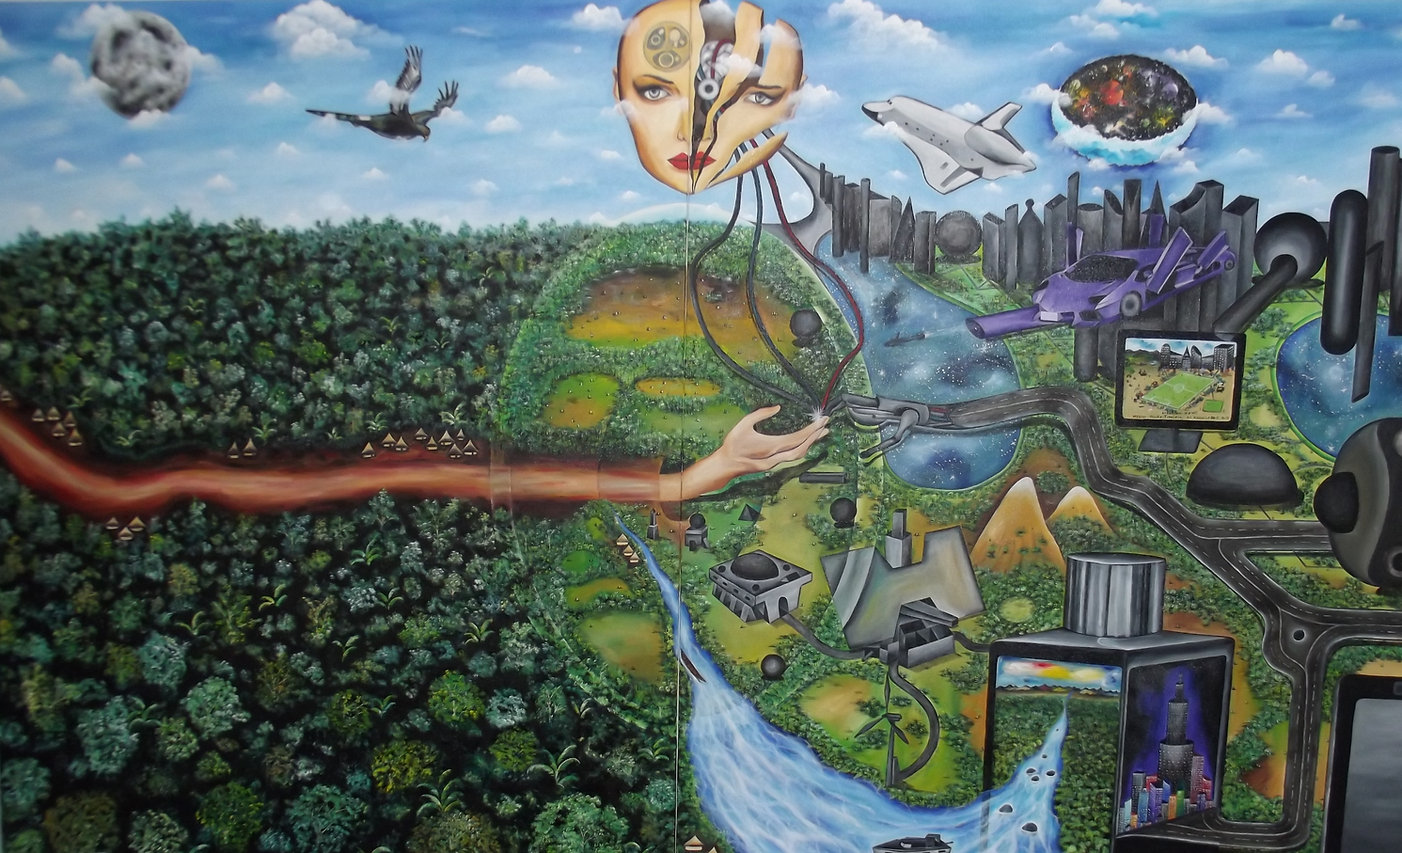 The transfer of knowledge 270 x 170 cm.J